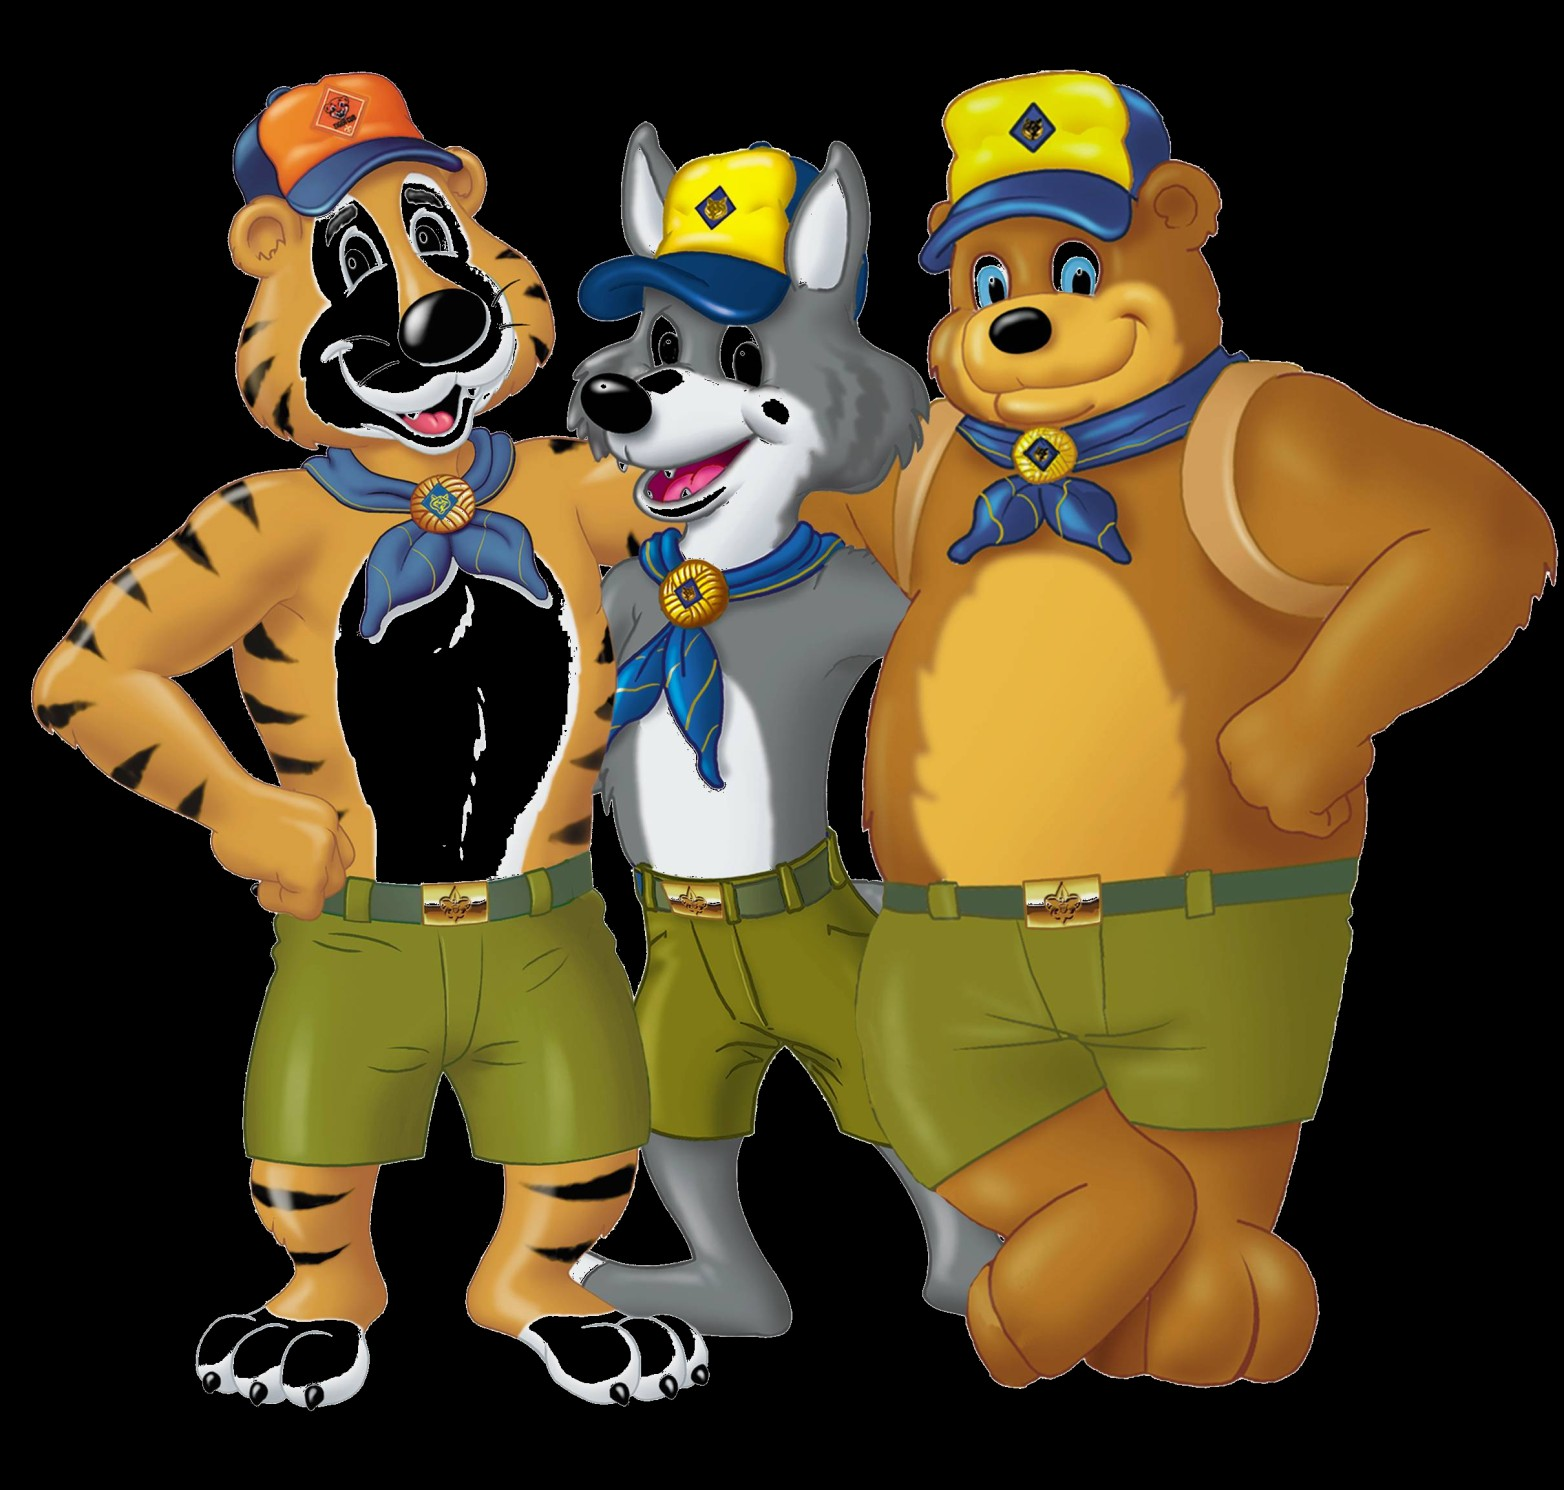 The basis of this program is for current Cub Scouting youth members to recruit their friends into the pack.